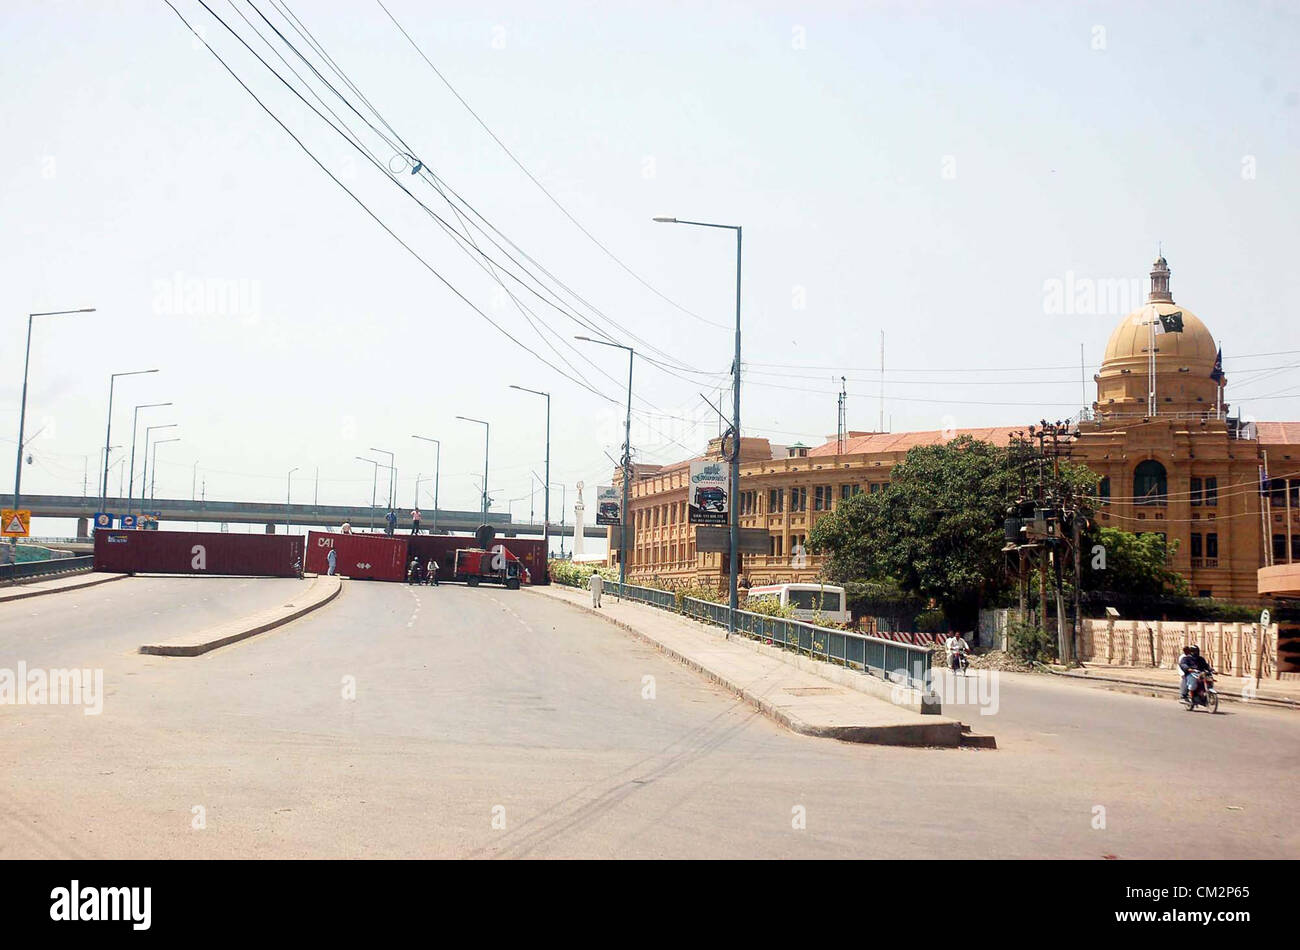 View of Netty Jetty Bridge that was closed with the help of